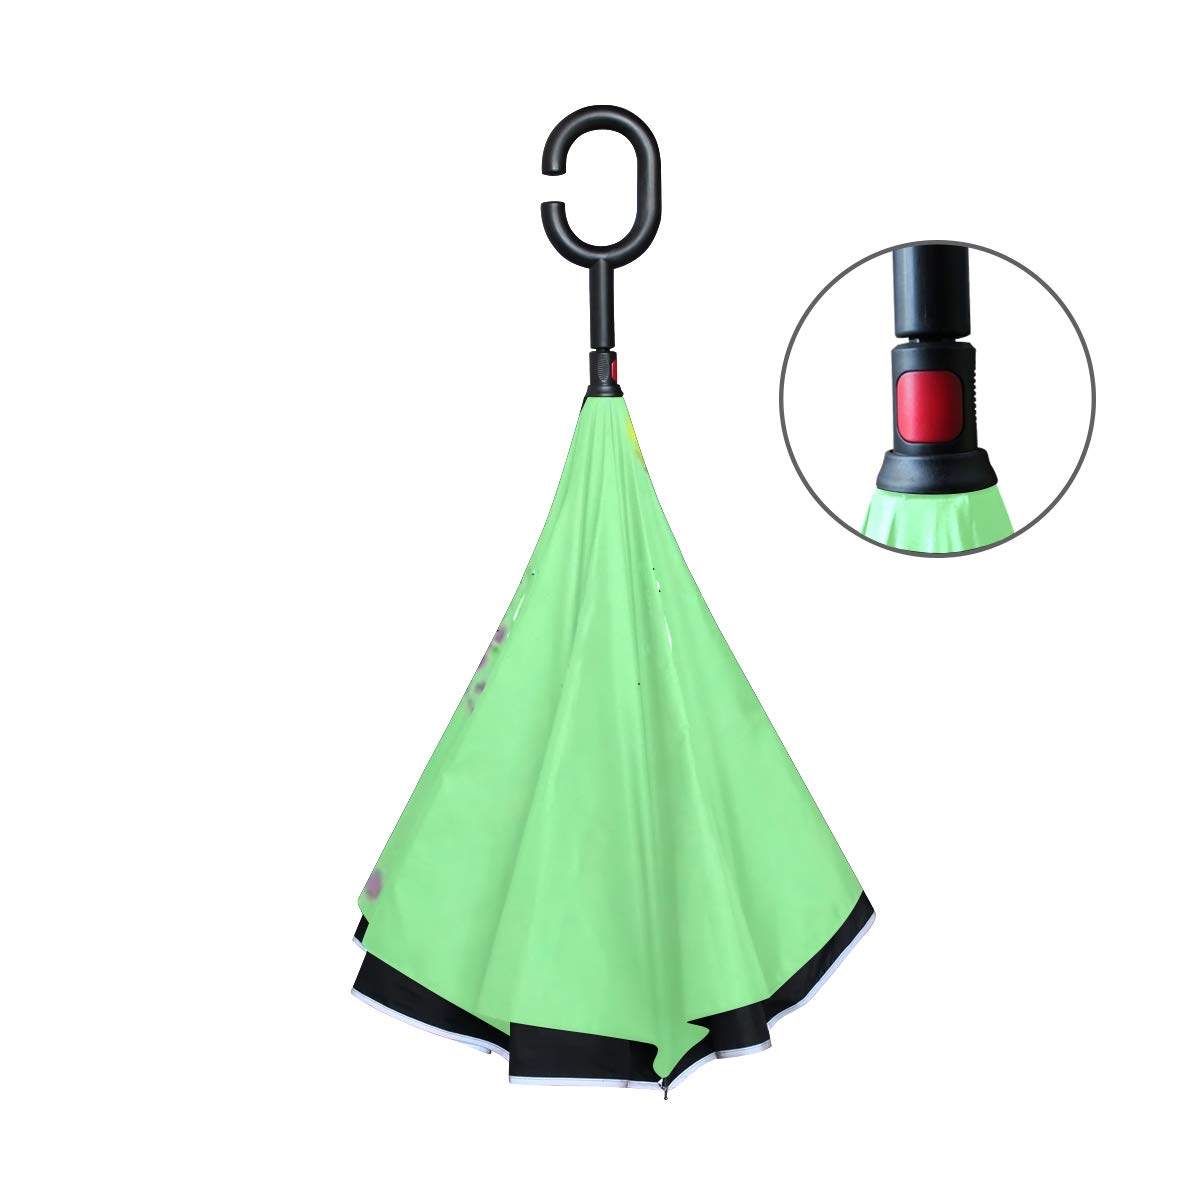 Jnseff Double Layer Inverted Banner Template Green Colorful School Fun Umbrellas Reverse Folding Umbrella Windproof Uv Protection Big Straight Umbrella for Car Rain Outdoor with C-Shaped Handle by Jnseff (Image #3)